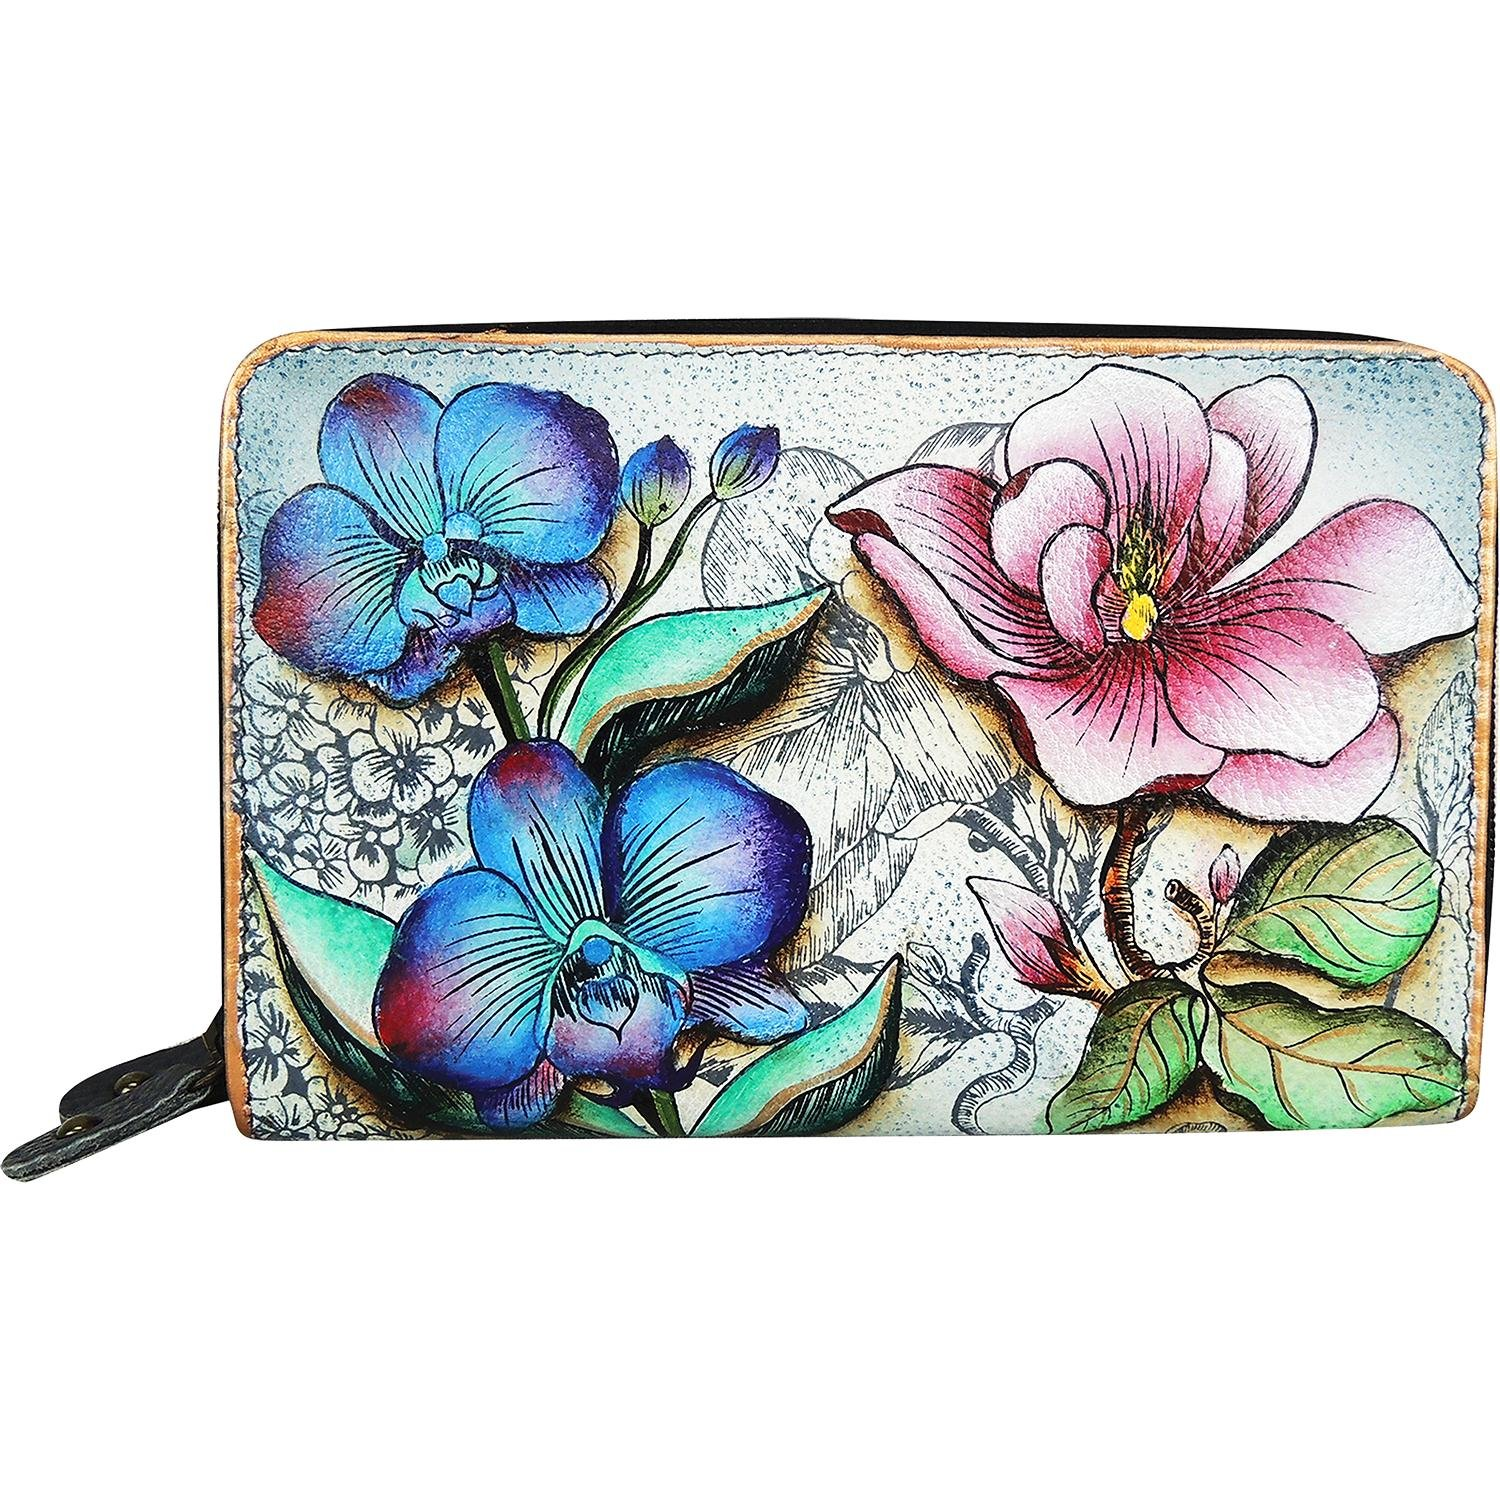 Anuschka Twin Zip Organizer Wallet FFTS, Floating Feathers, One Size